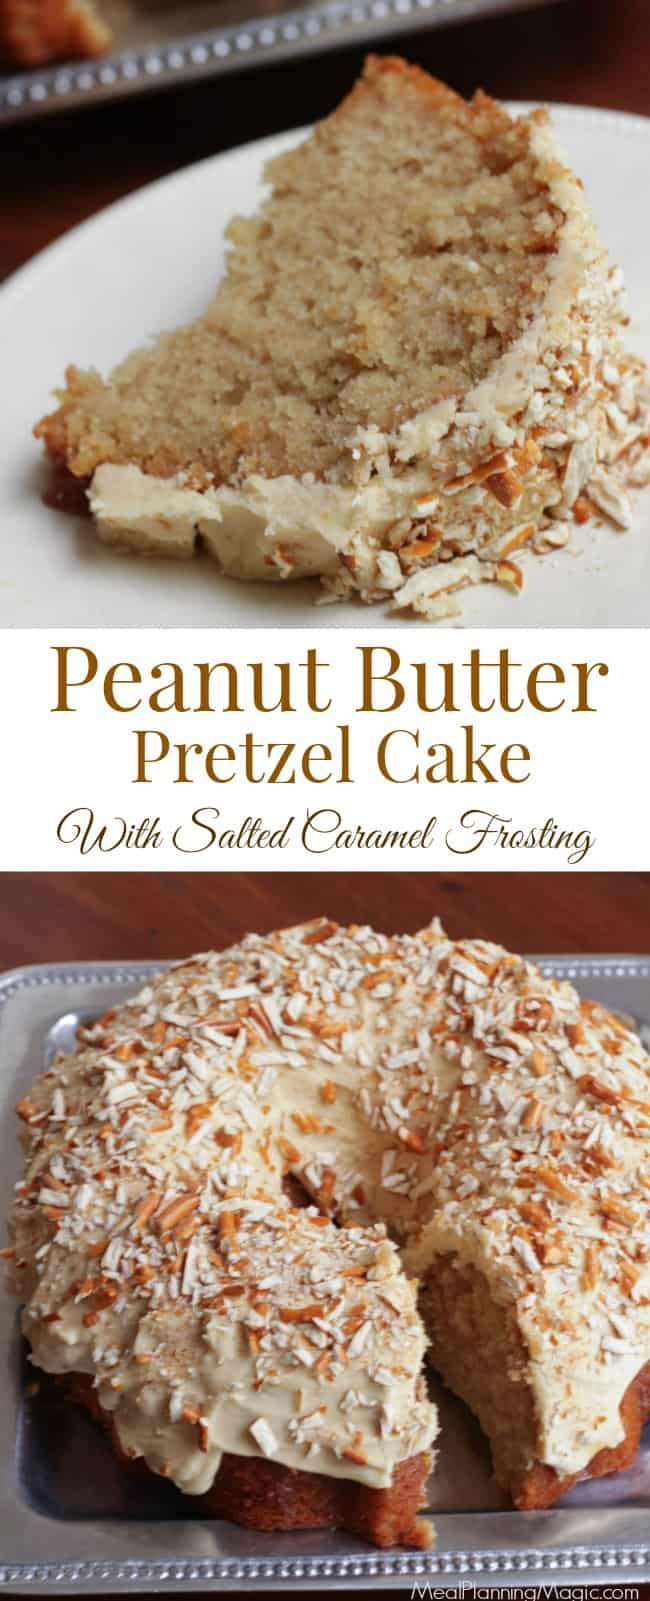 This Peanut Butter Pretzel Cake is filled with Salted Caramel Syrup and topped off with creamy Salted Caramel Frosting the sprinkled with crushed pretzels. And each step can be made ahead--making it a perfect peanut butter lover's cake if you ask me! | Recipe at MealPlanningMagic.com